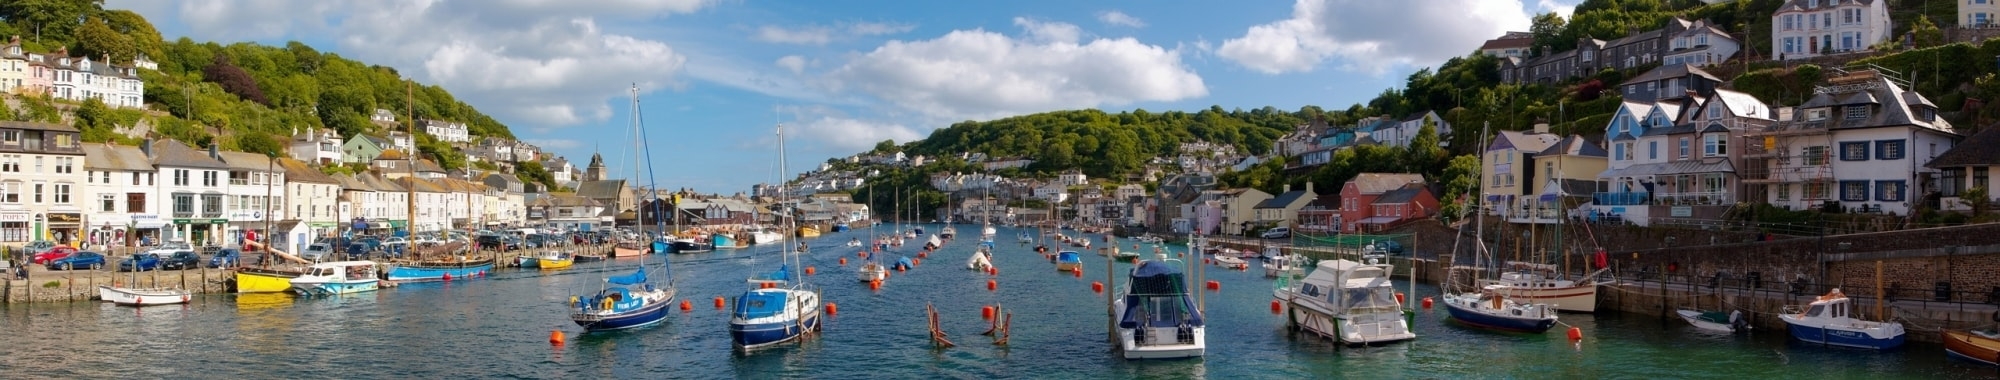 Looe Harbour Cornwall